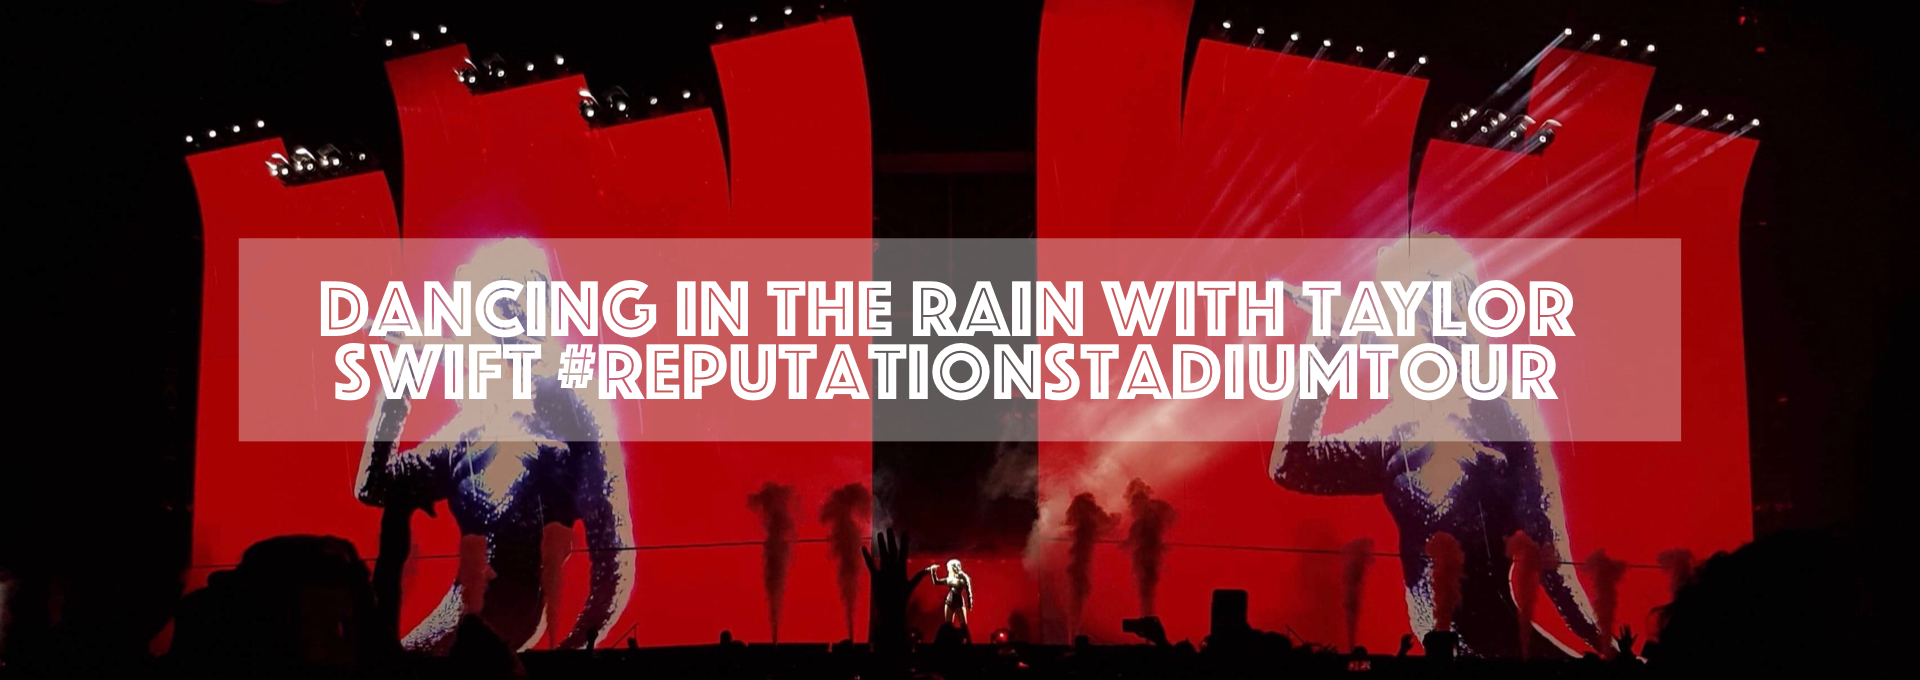 Dancing in the rain with Taylor Swift